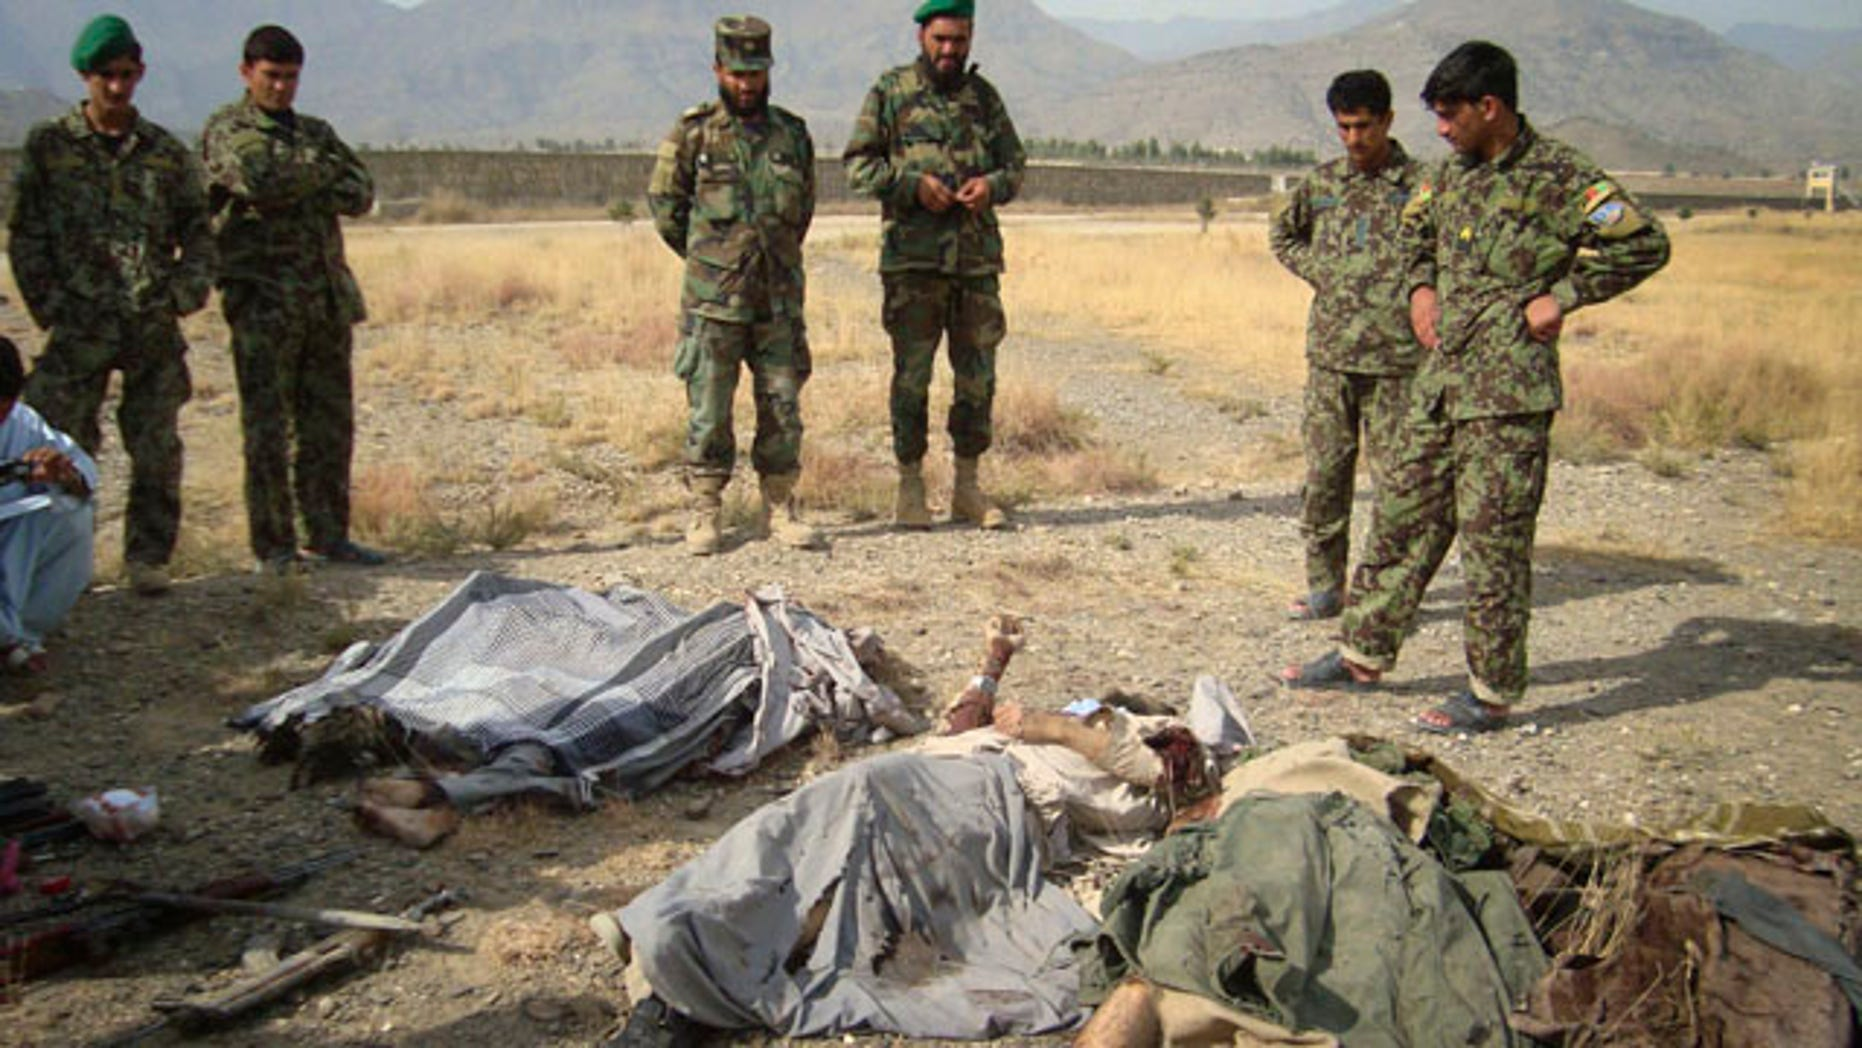 Nov 4: Afghan soldiers look over the bodies of Taliban militants killed by a coalition air strike in Khost, Afghanistan.